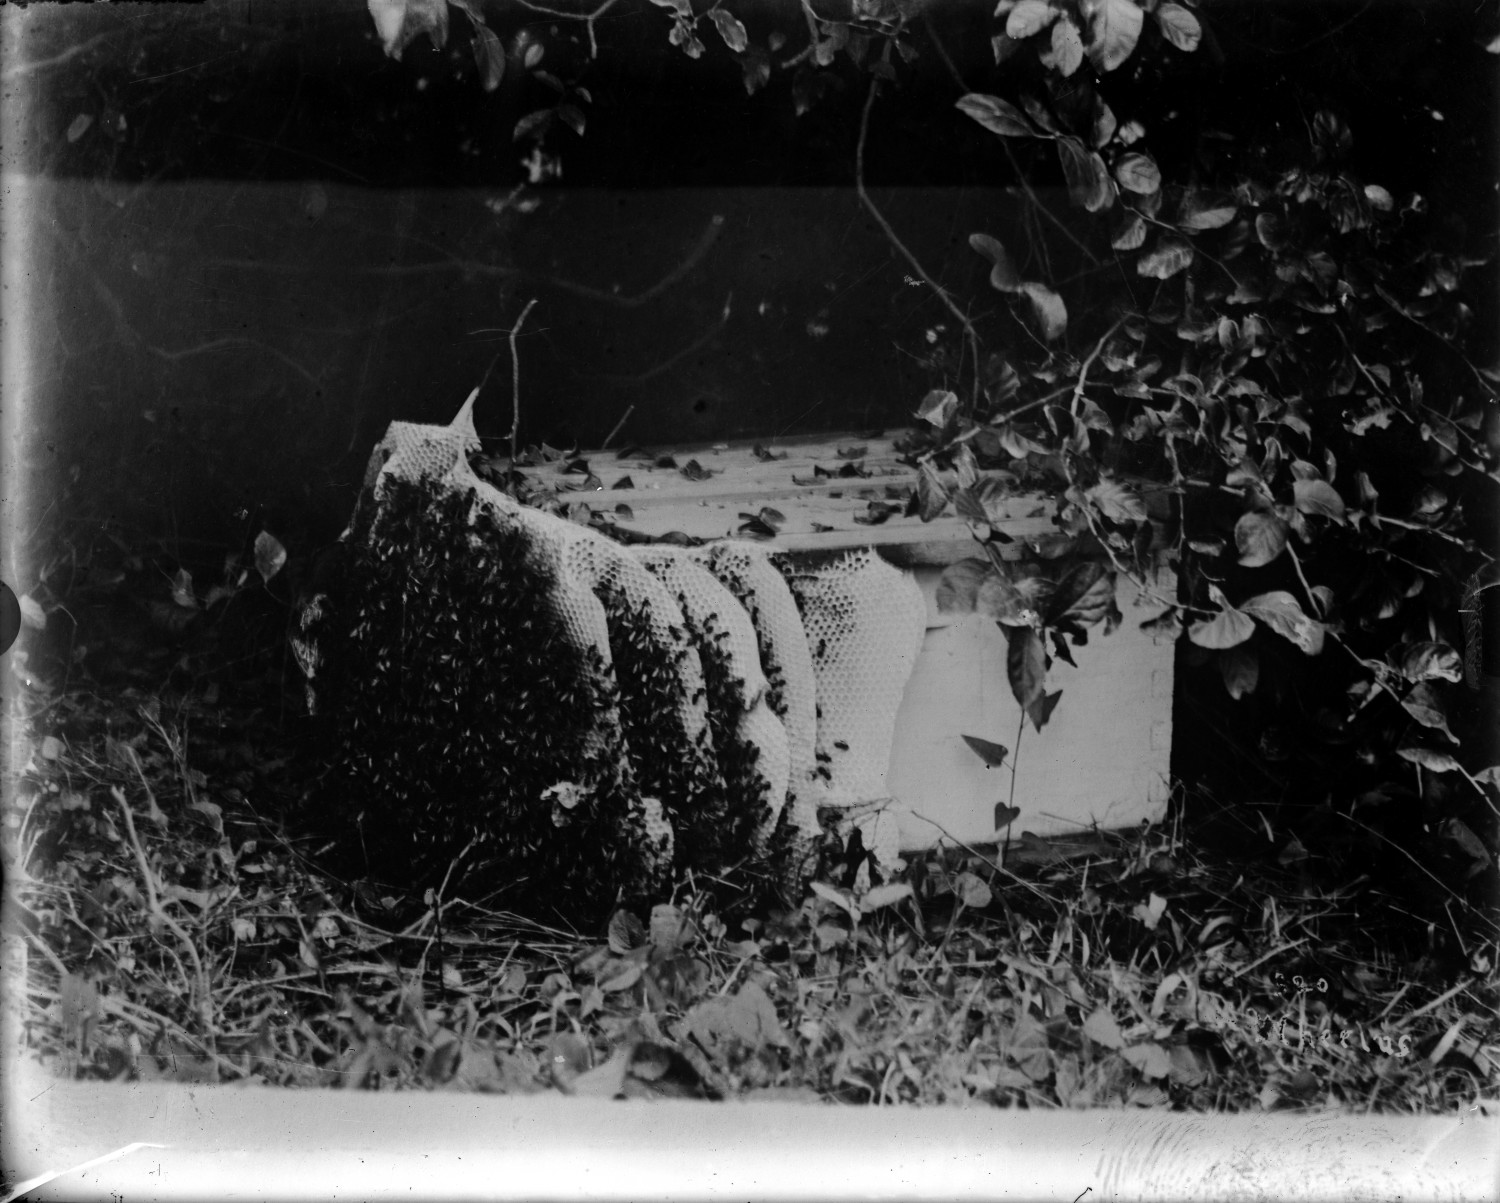 [Commercial bee hive]                                                                                                      [Sequence #]: 1 of 1